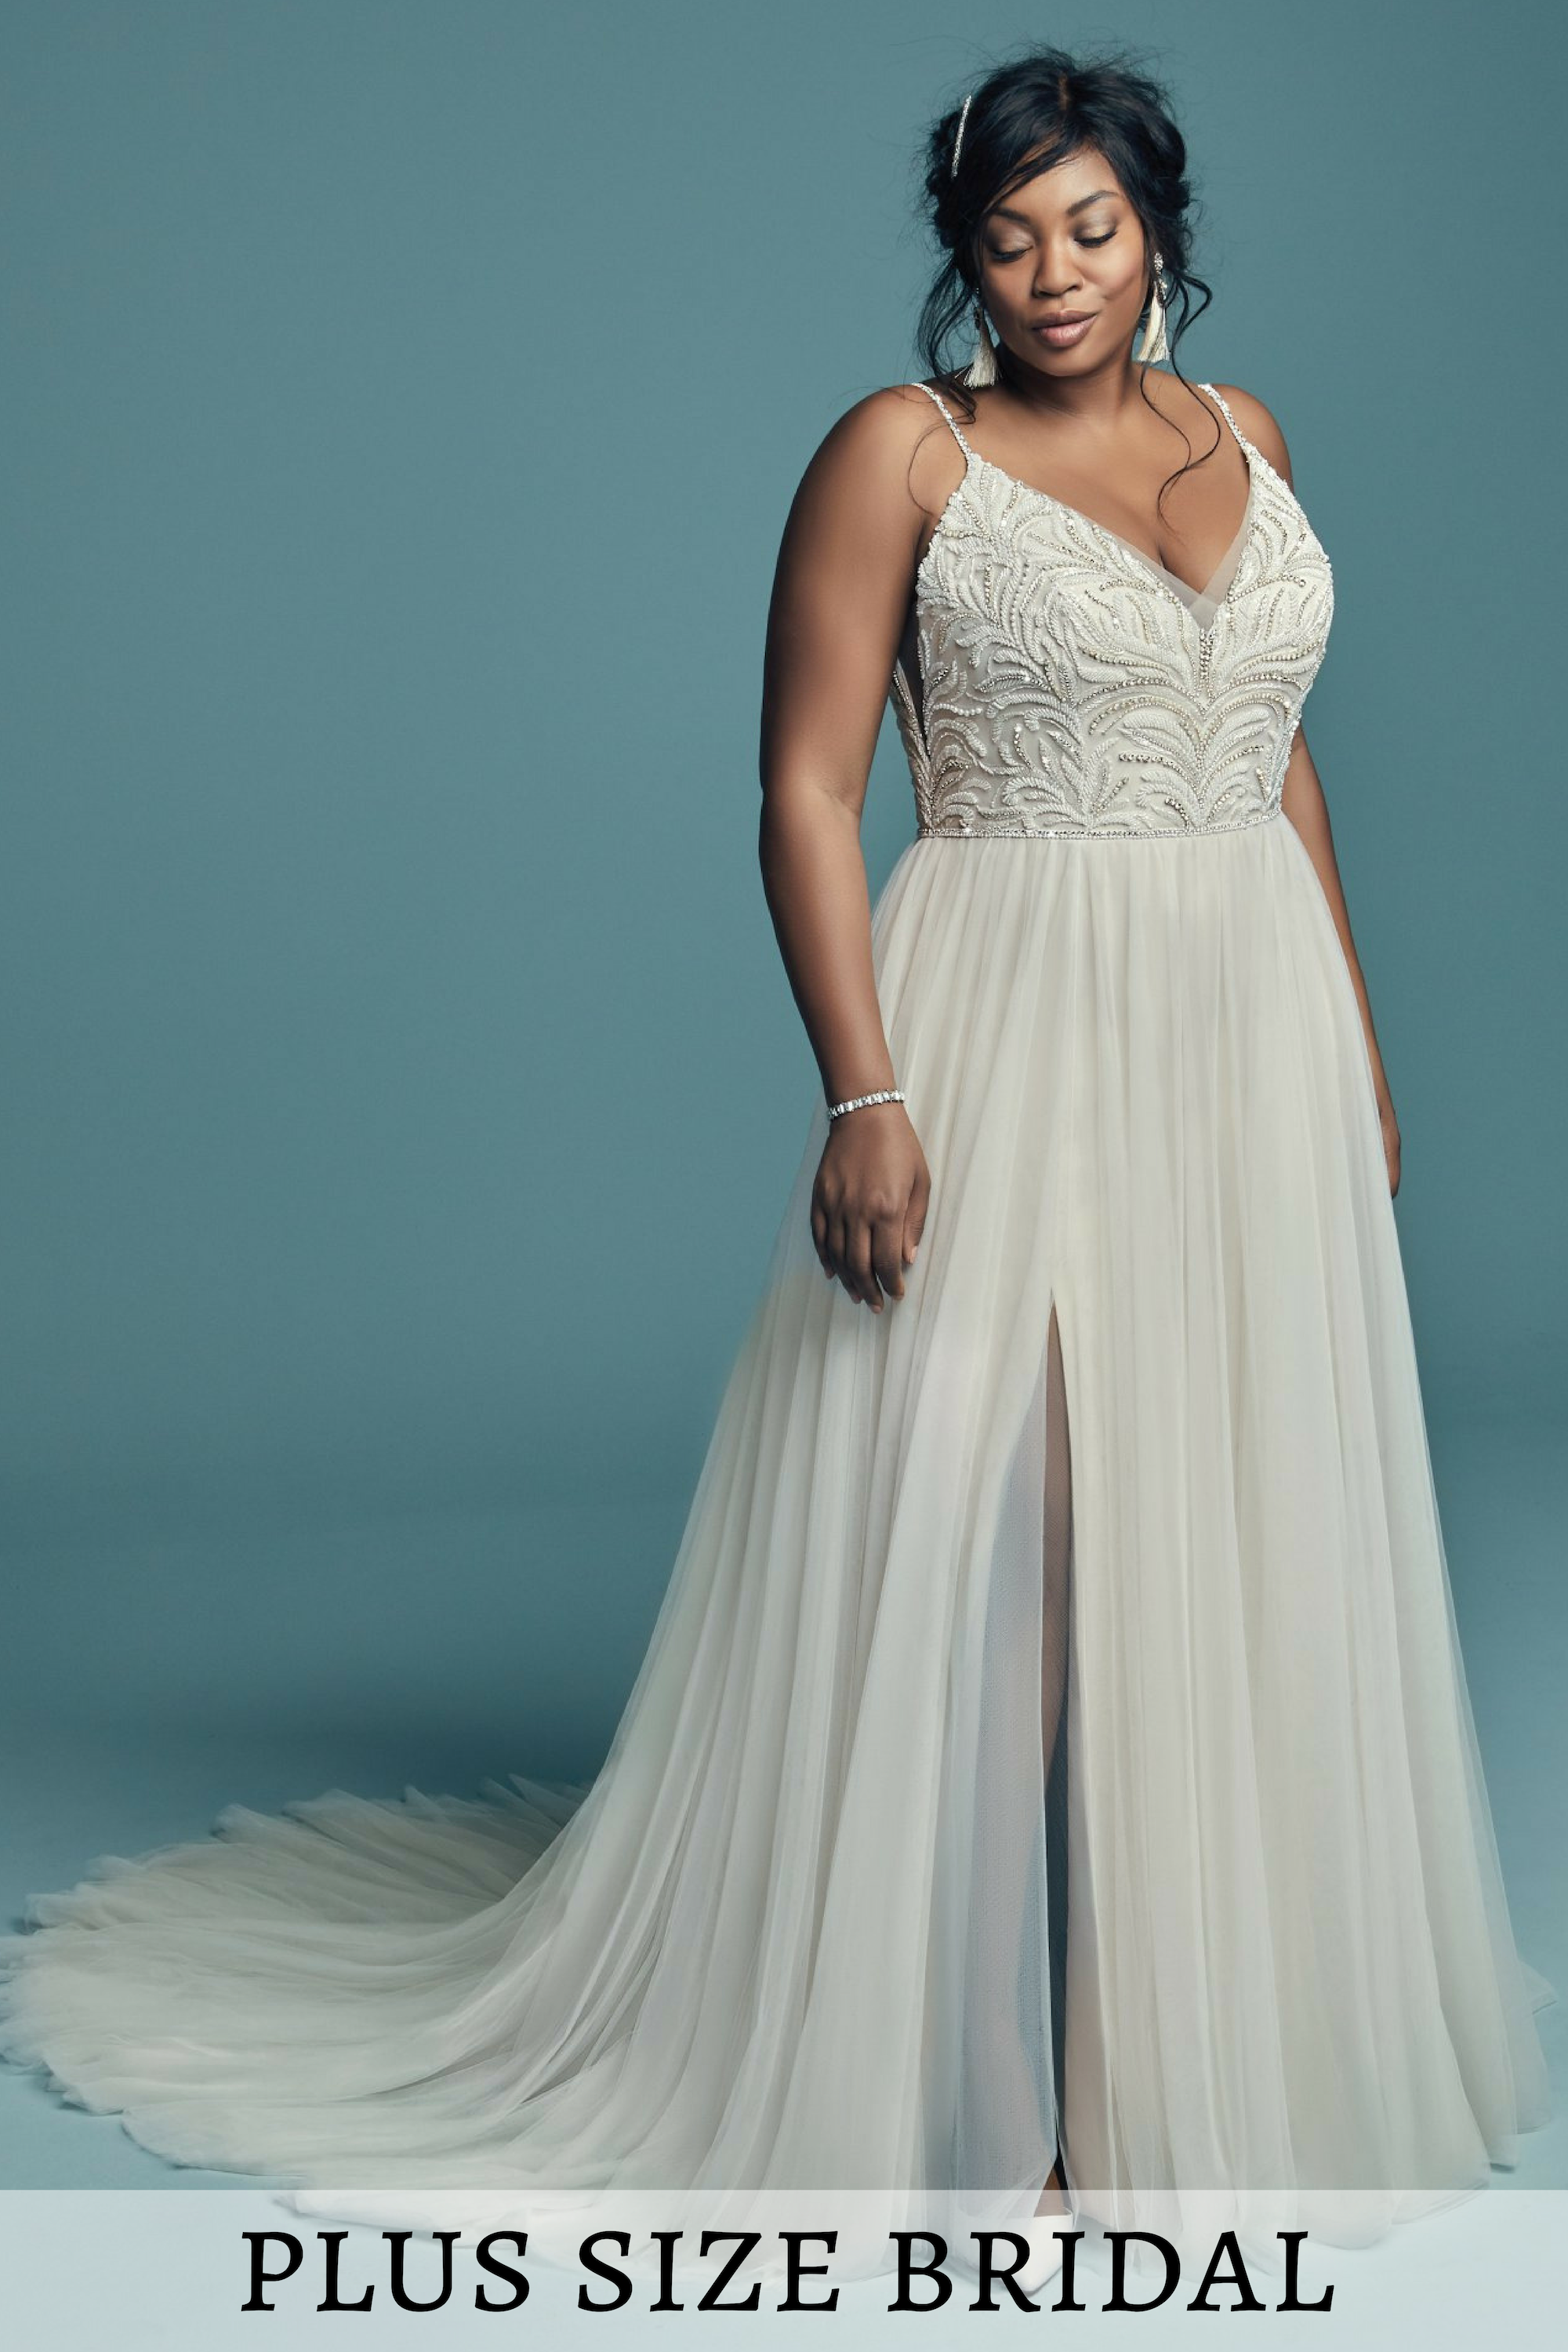 Plus Size Bridal.png